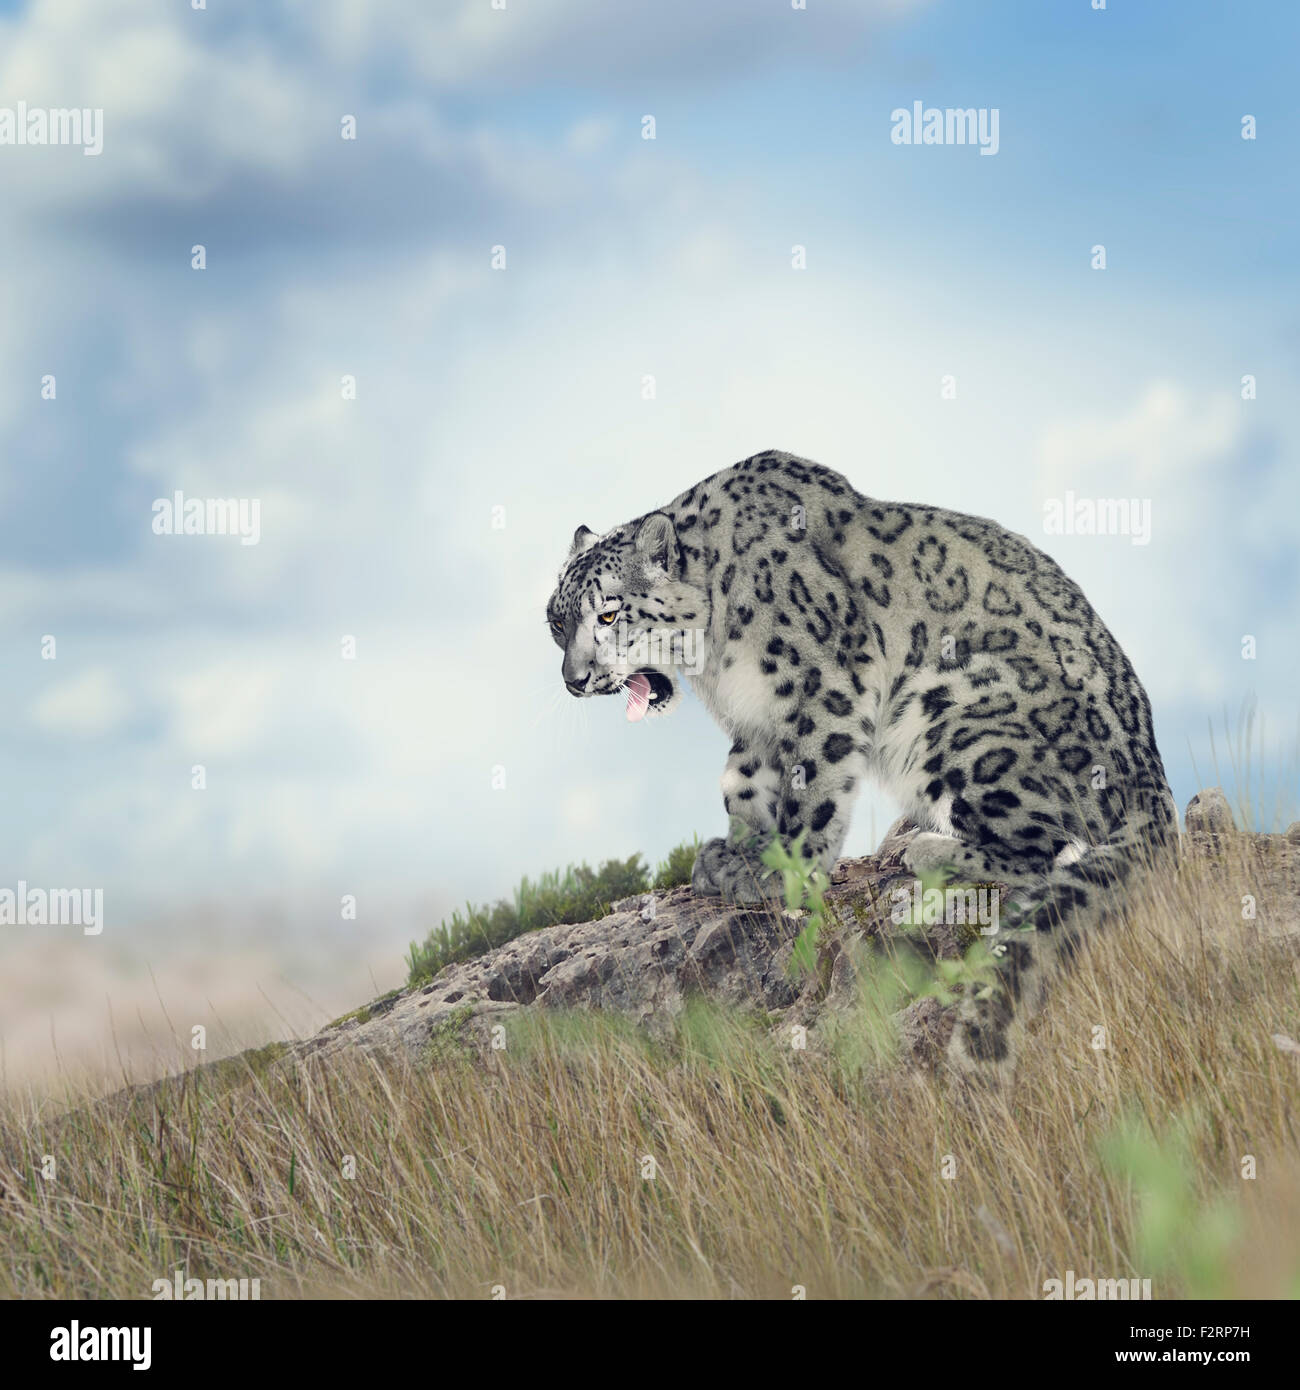 Snow Leopard Sitting on the Rock - Stock Image